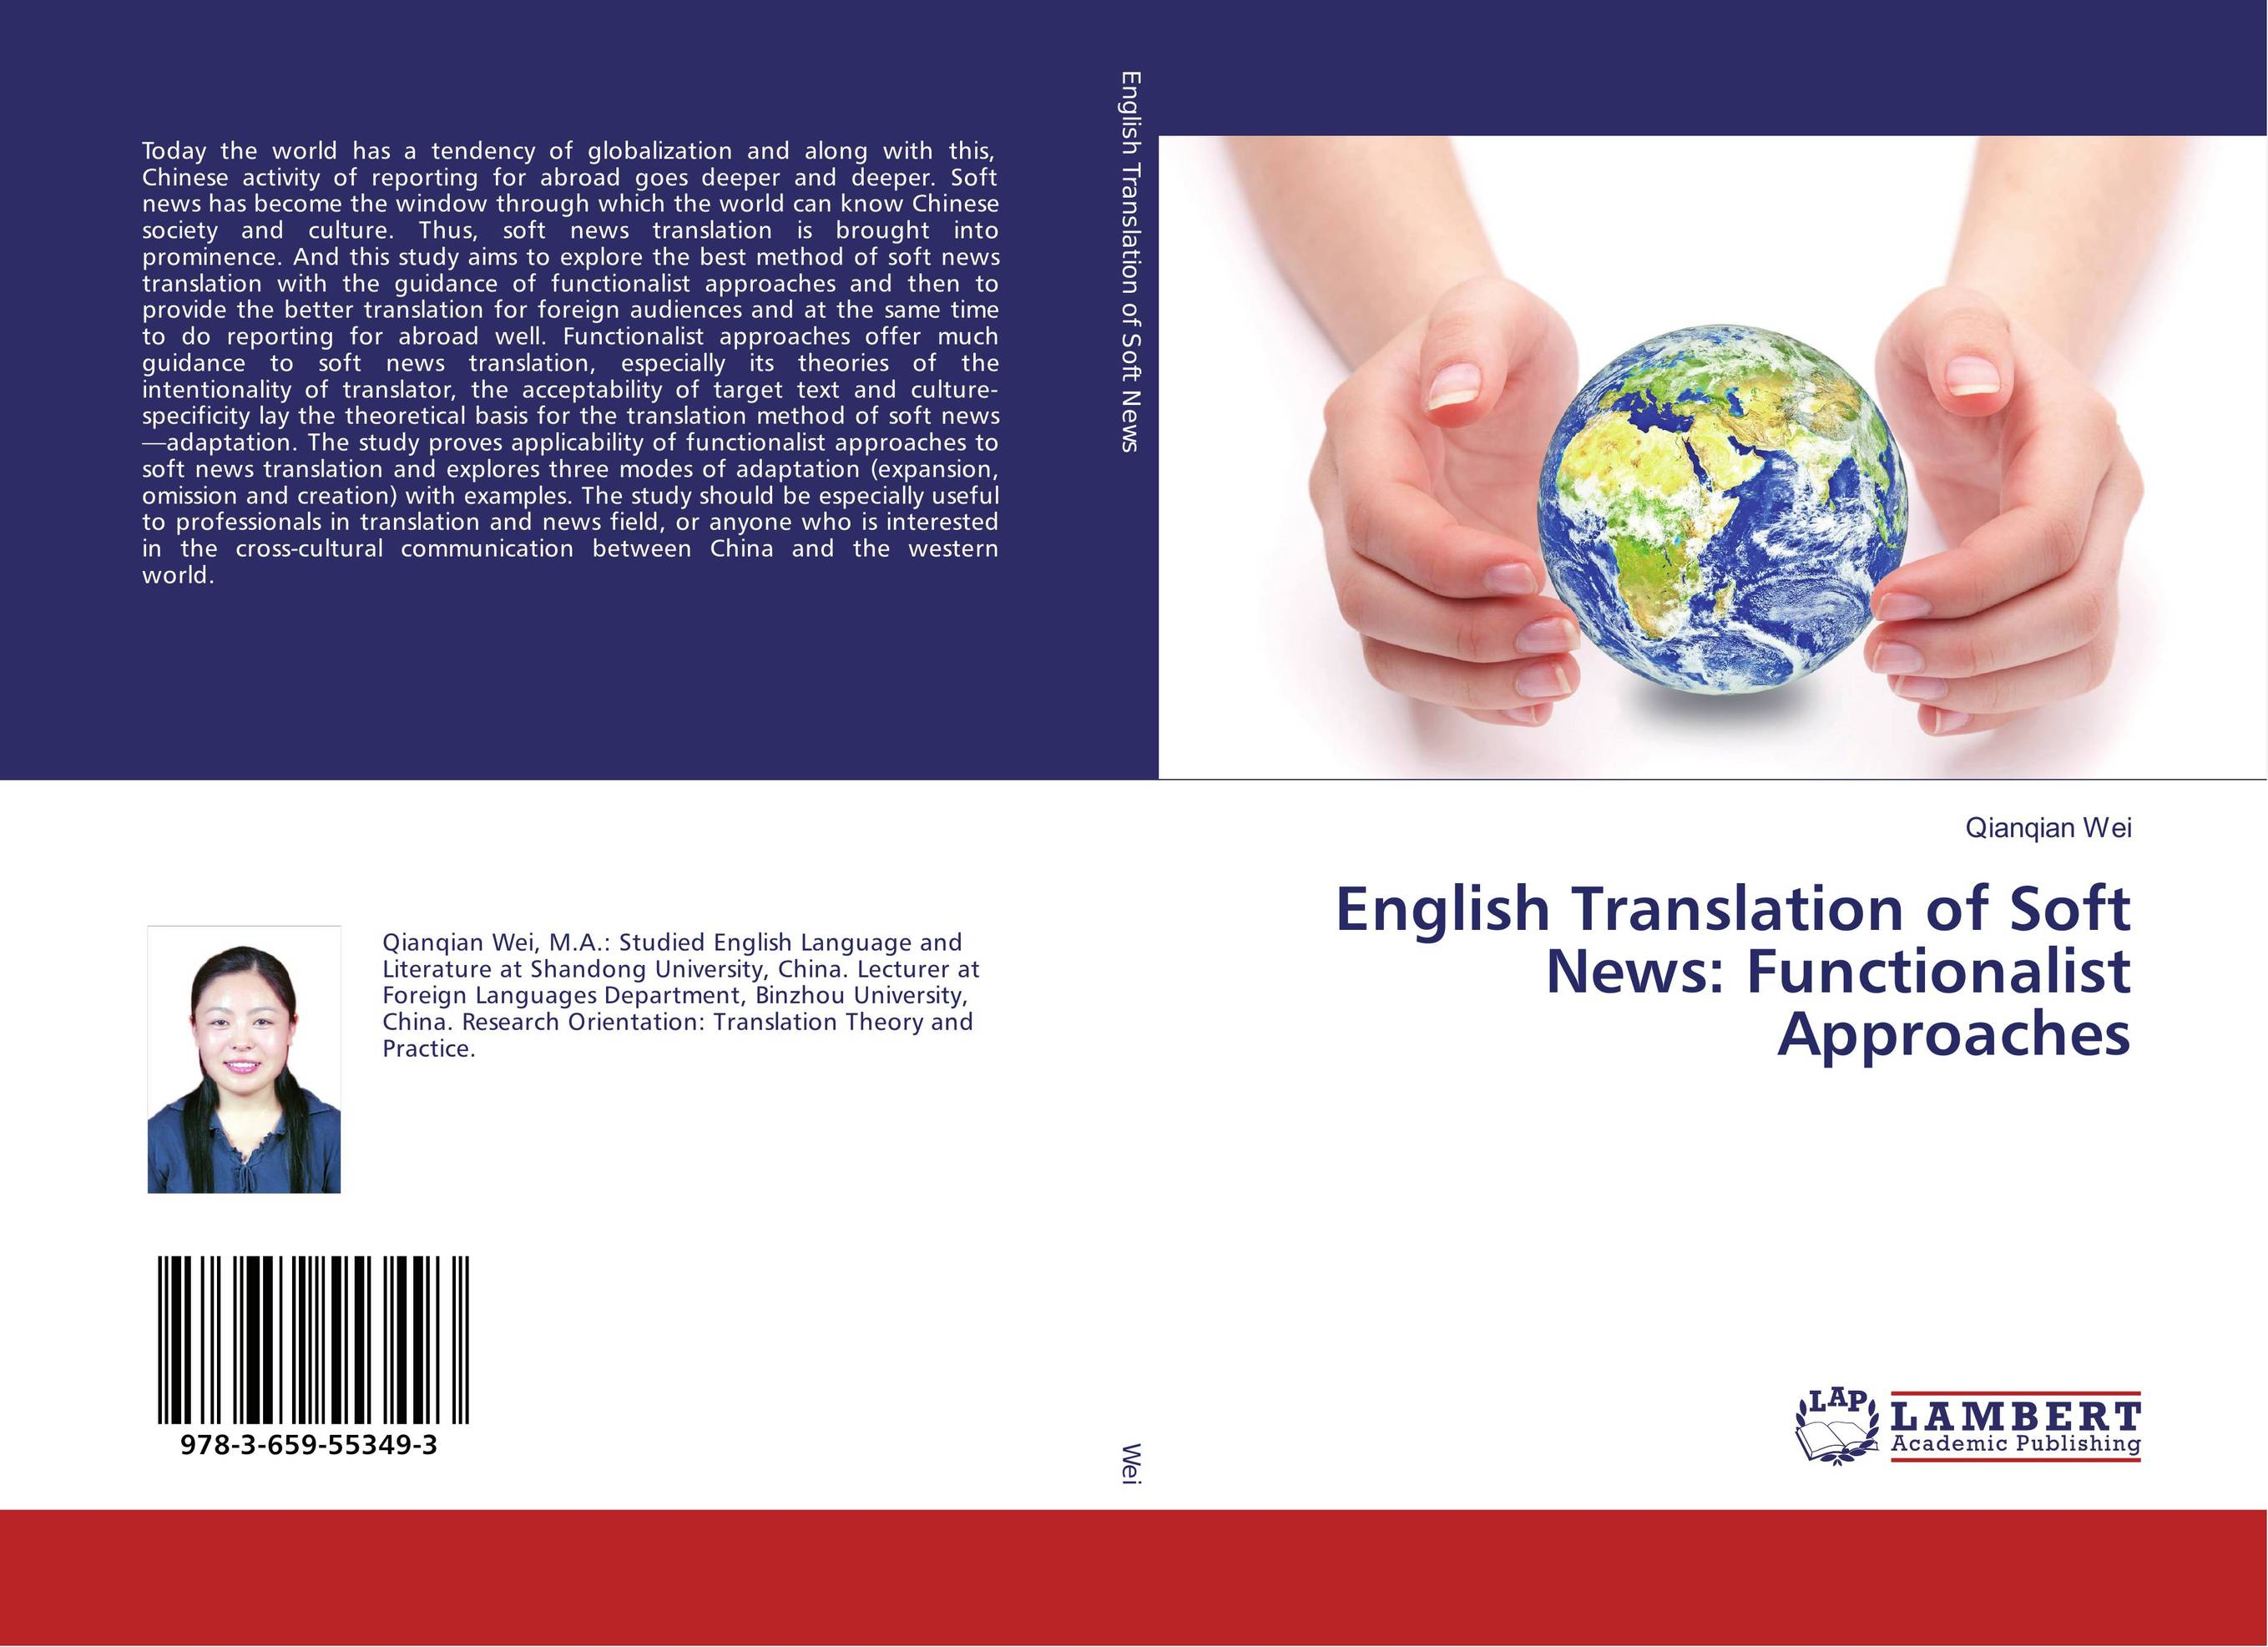 English Translation of Soft News: Functionalist Approaches e hutchins culture and inference – a trobriand case study